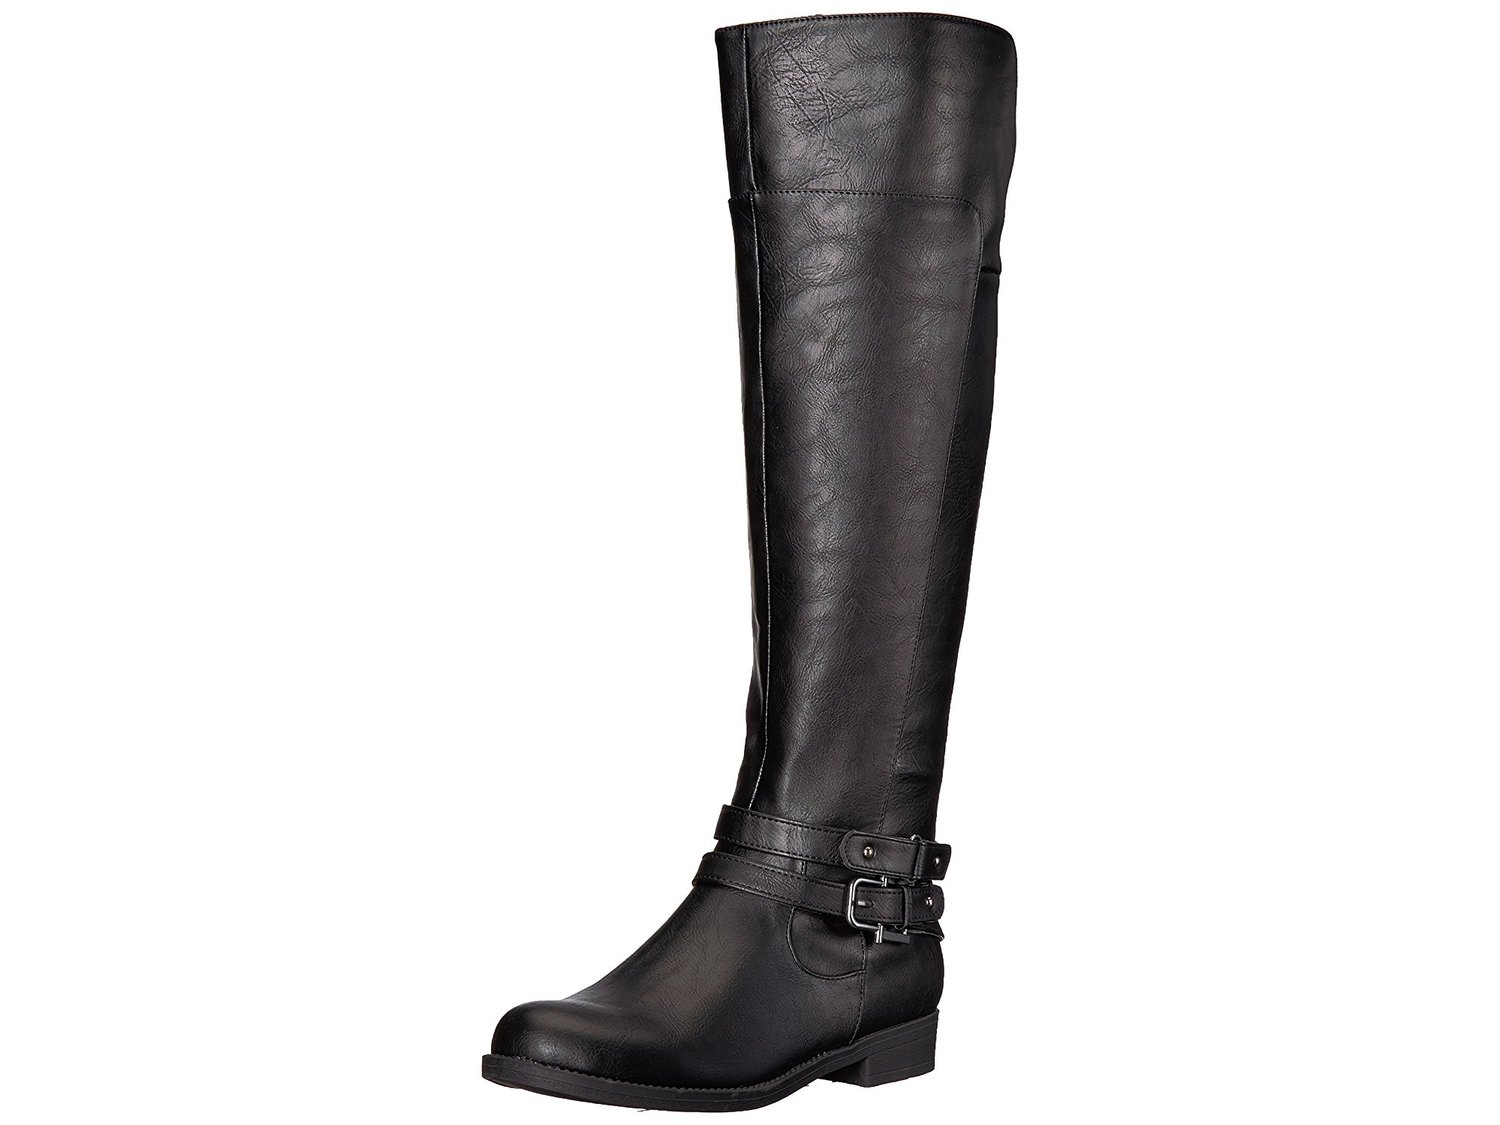 Lifestride Women's Delilah Equestrian Boot by LifeStride